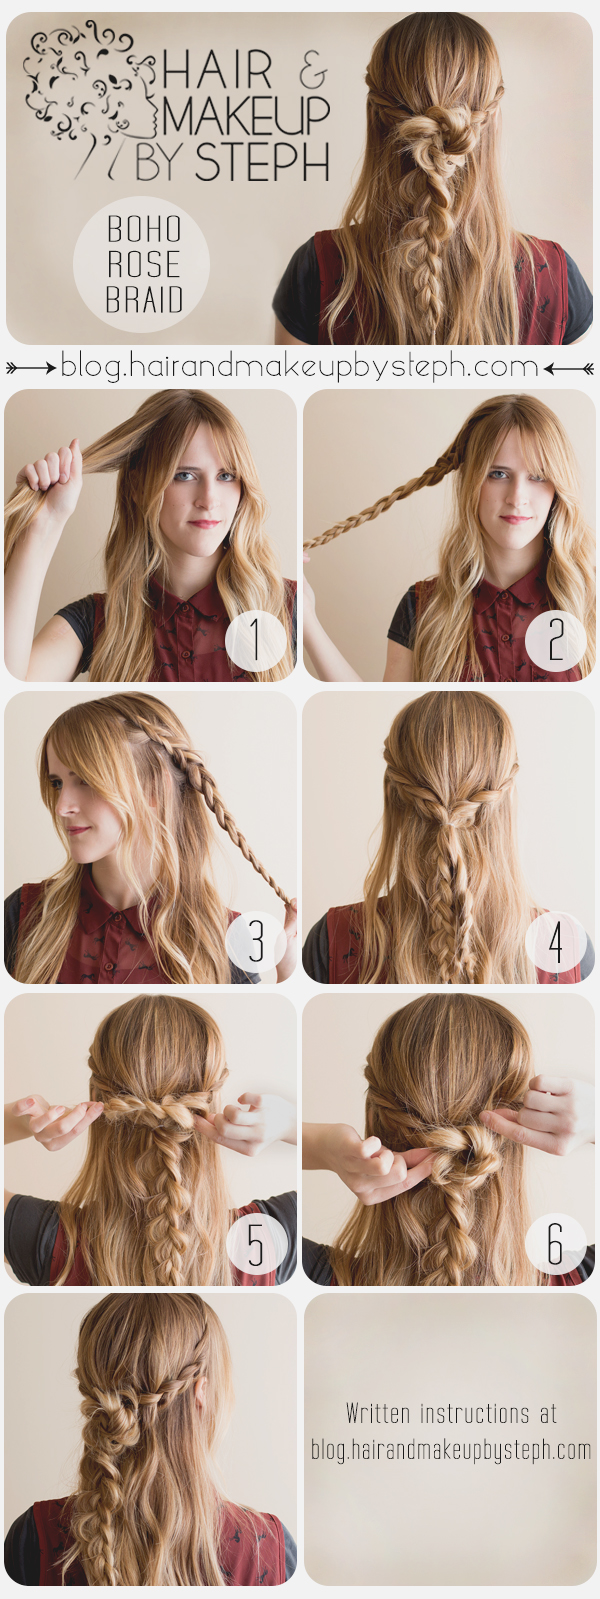 20 most beautiful braided hairstyle tutorials for 2014 - pretty